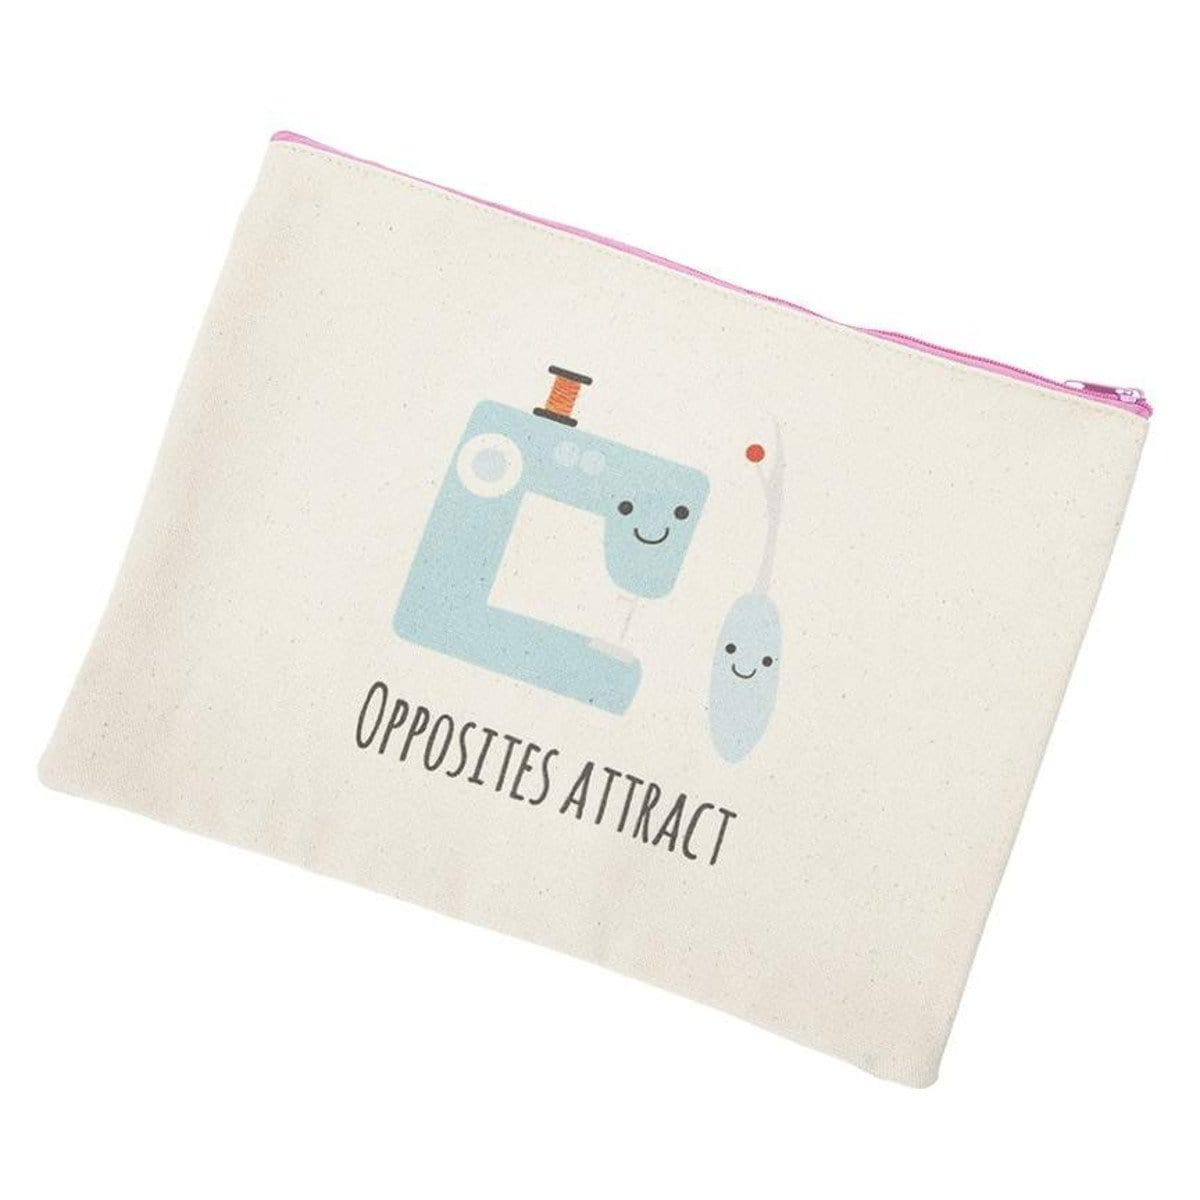 Opposites Attract - Canvas Zipper Pouch